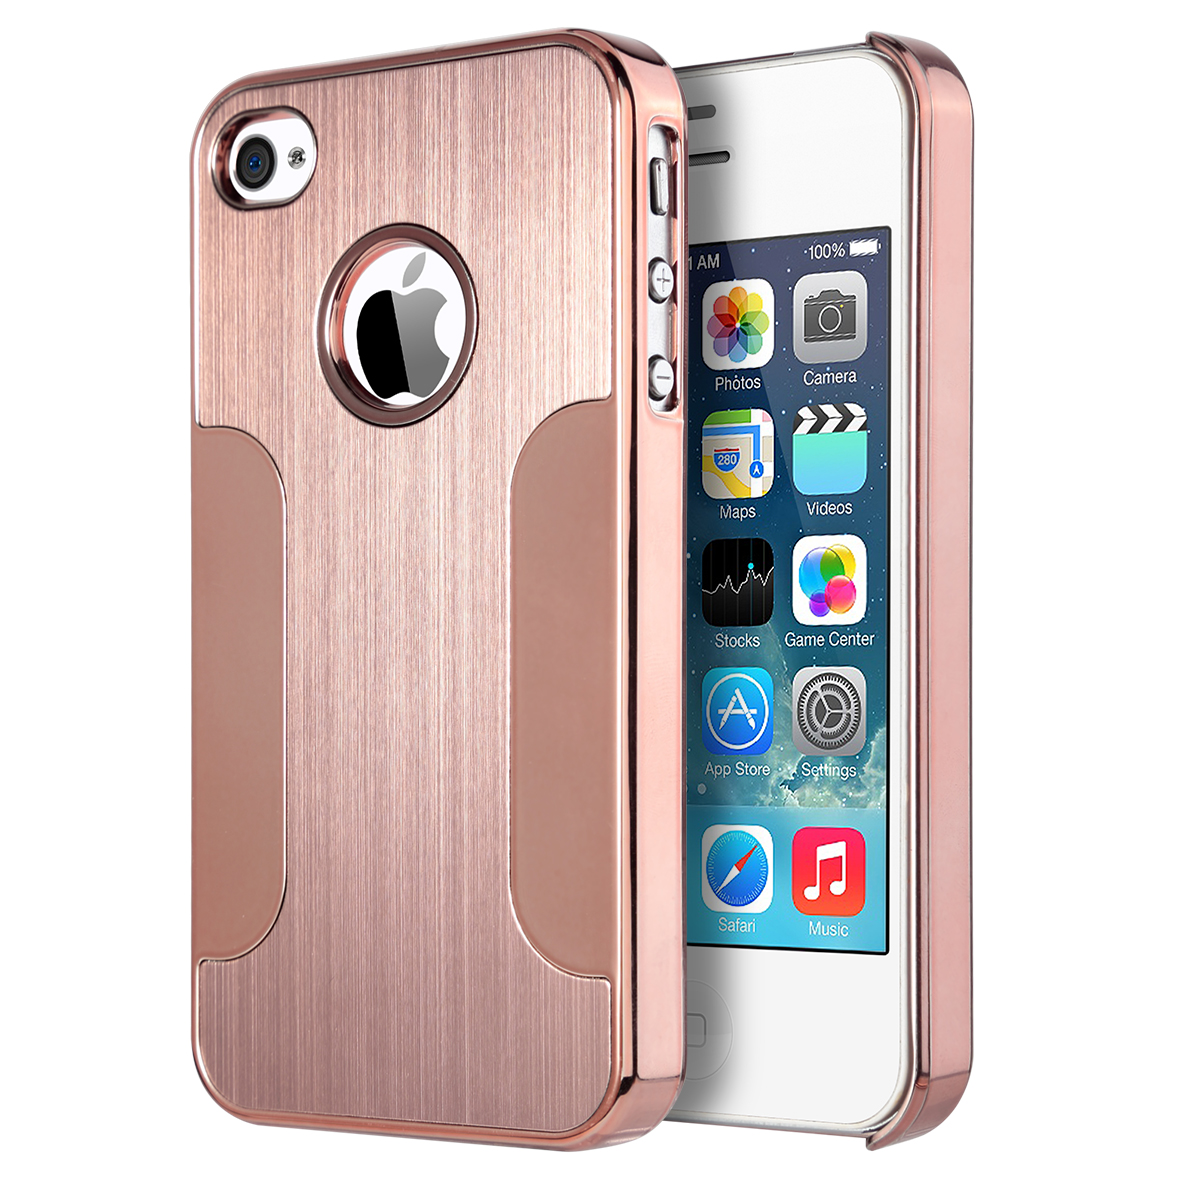 iphone 4s cases for sale ulak aluminum chrome coating bumper back cover 9539